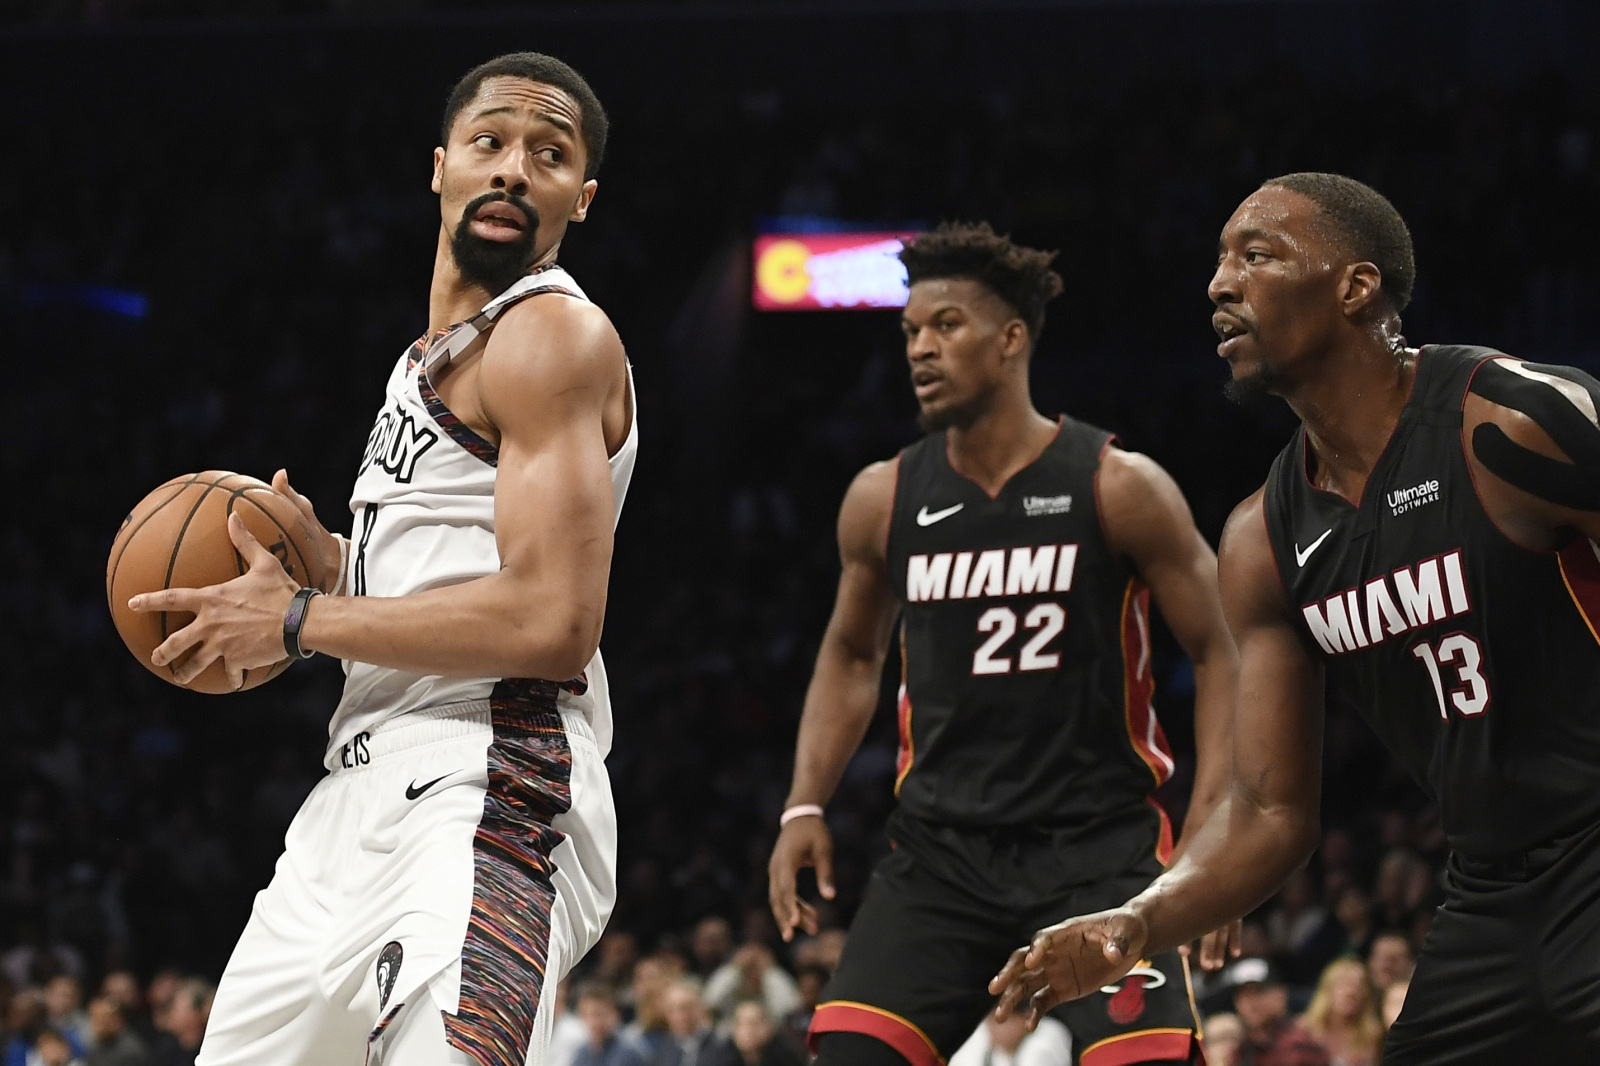 Imaginary skid or idiosyncrasy of Miami Heat… Saturday is the test